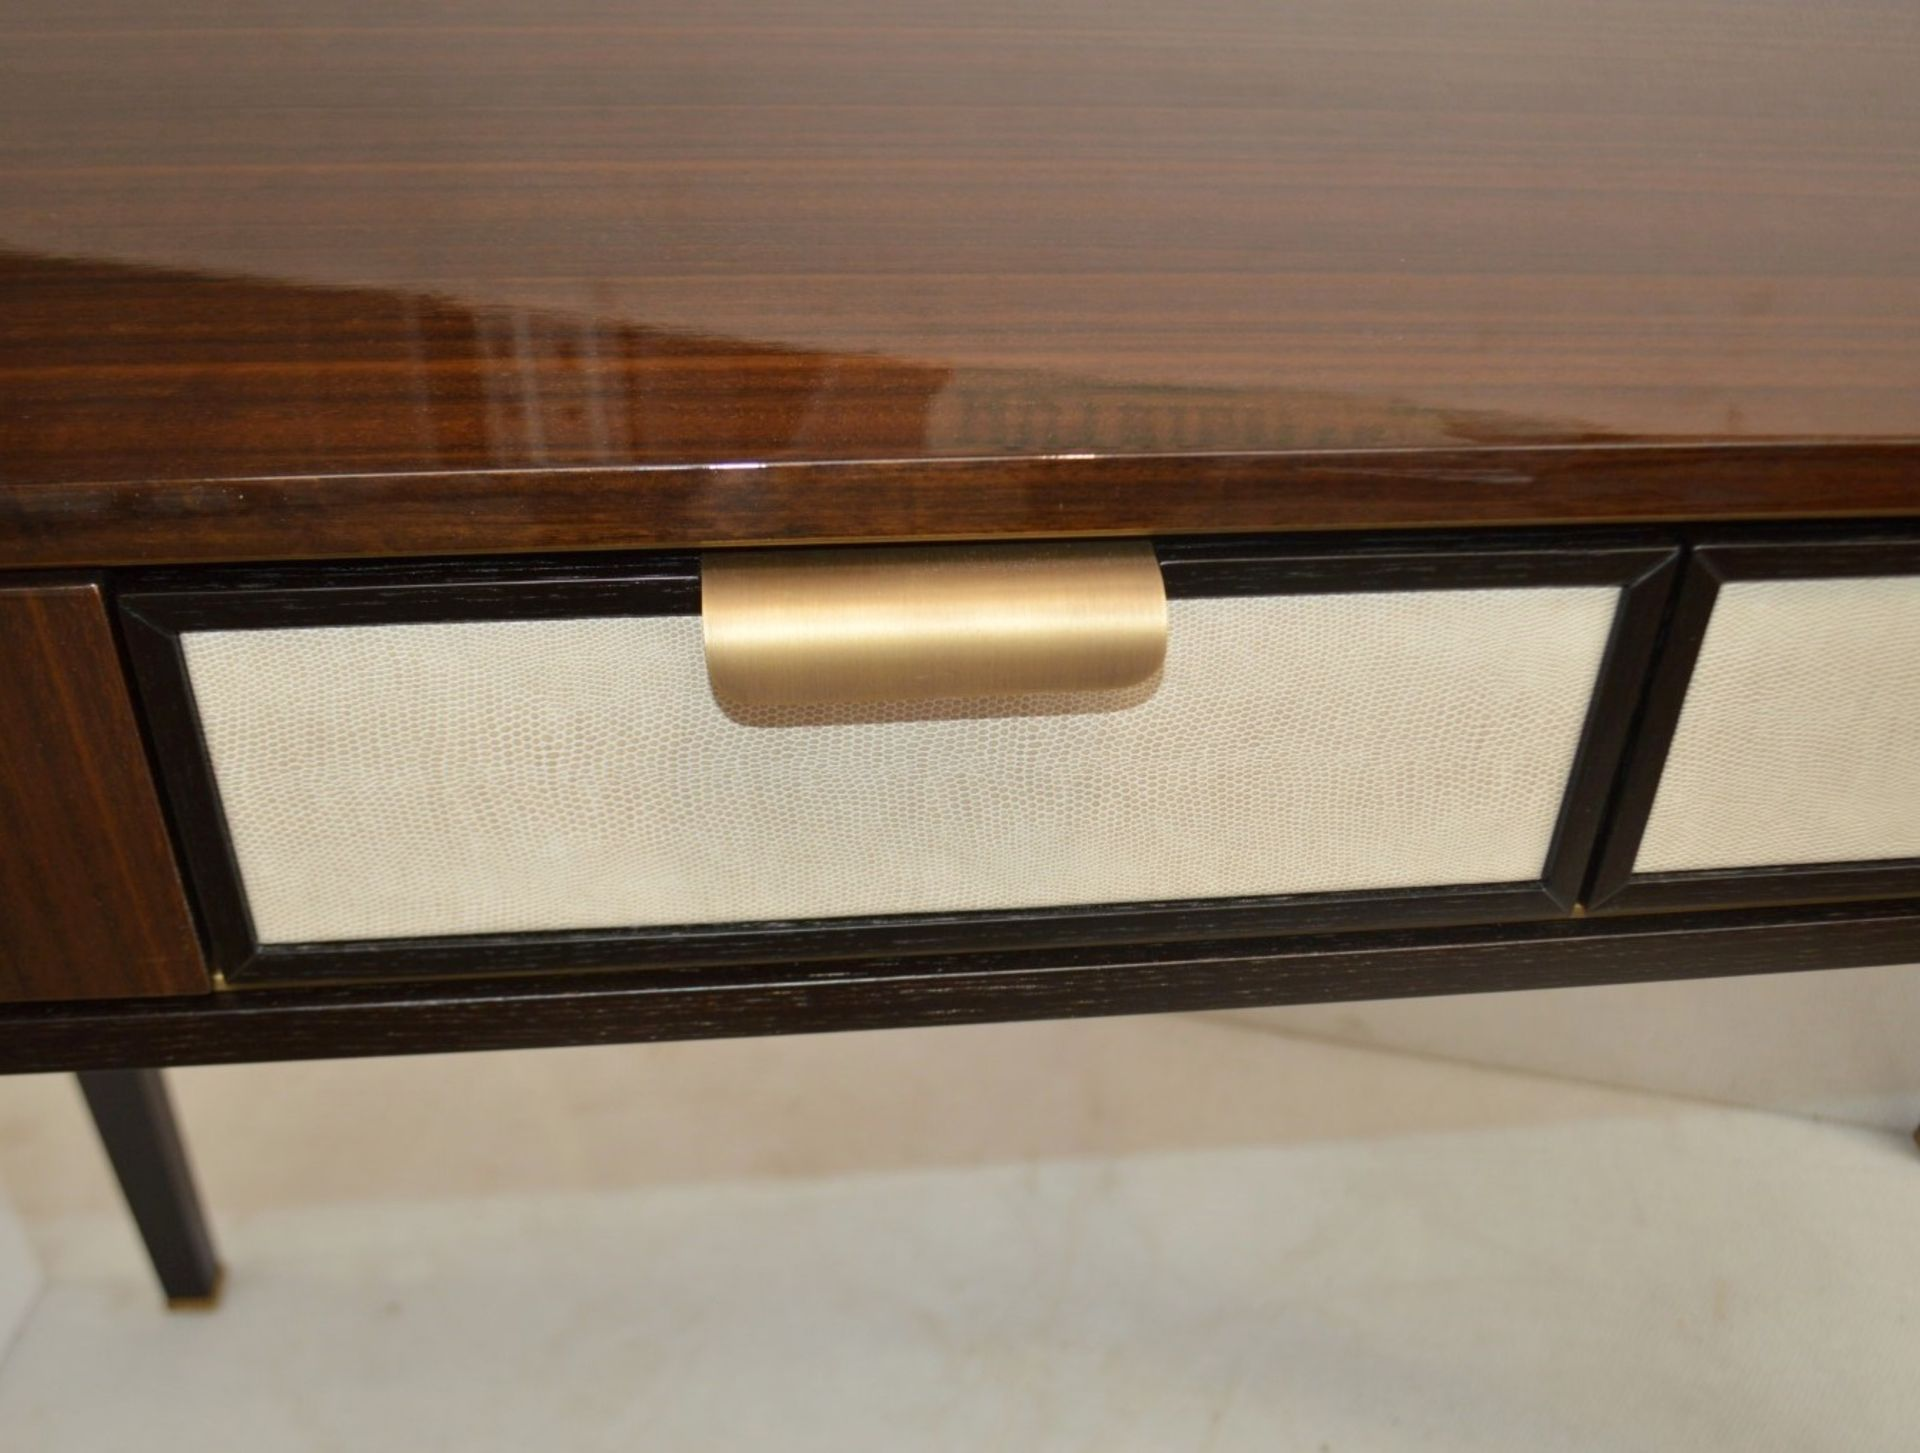 1 x FRATO 'Mandalay' Luxury Designer 2-Drawer Dresser Dressing Table In A Gloss Finish - RRP £4,300 - Image 17 of 17